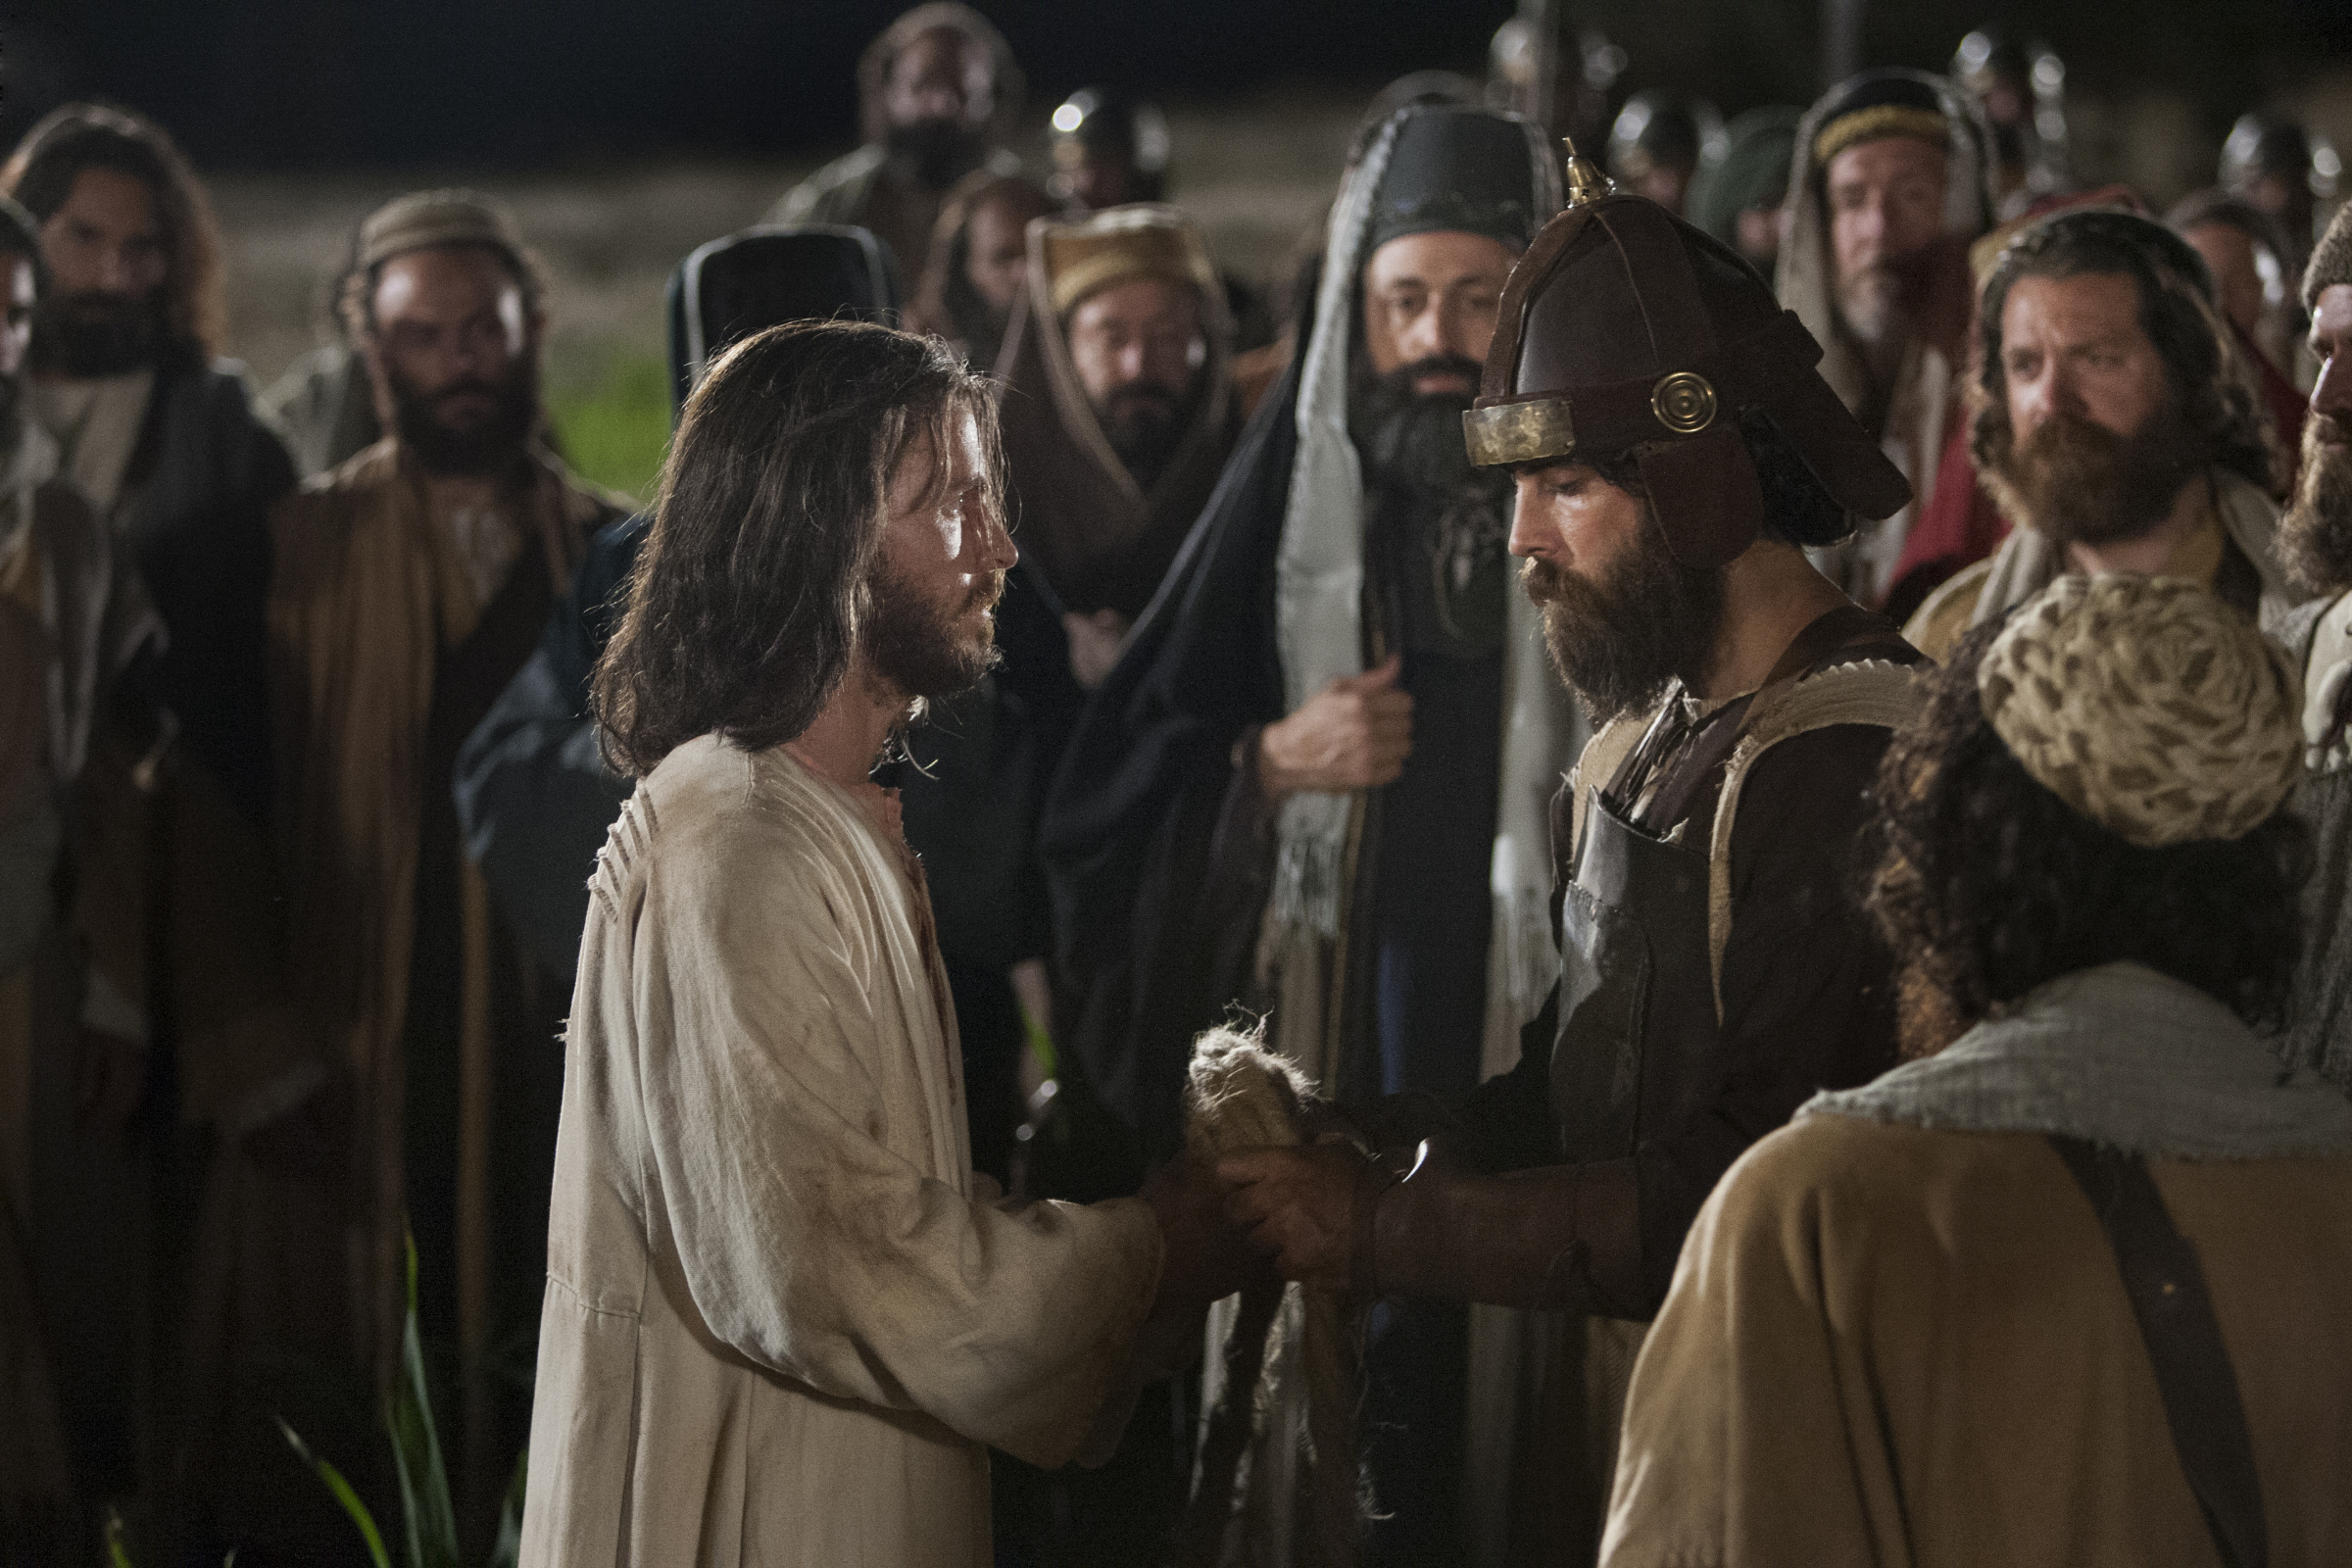 https://www.lds.org/bc/content/bible-videos/videos/the-savior-suffers-in-gethsemane/jesus-christ-is-arrested.jpg